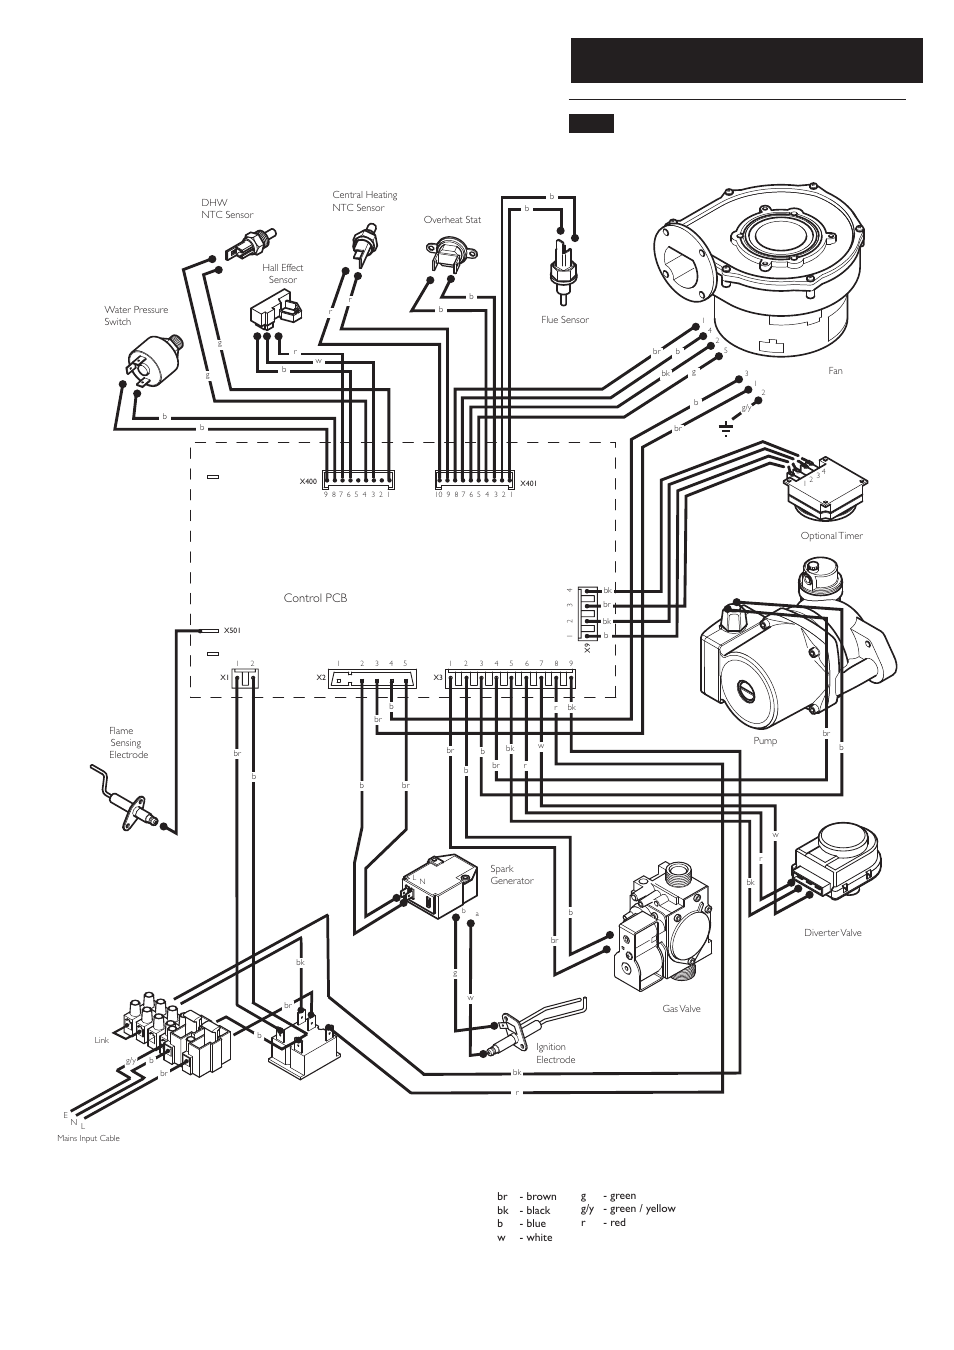 0 electrical 1 illustrated wiring diagram control pcb baxi 0 electrical 1 illustrated wiring diagram control pcb baxi potterton heatmax combi he asfbconference2016 Images